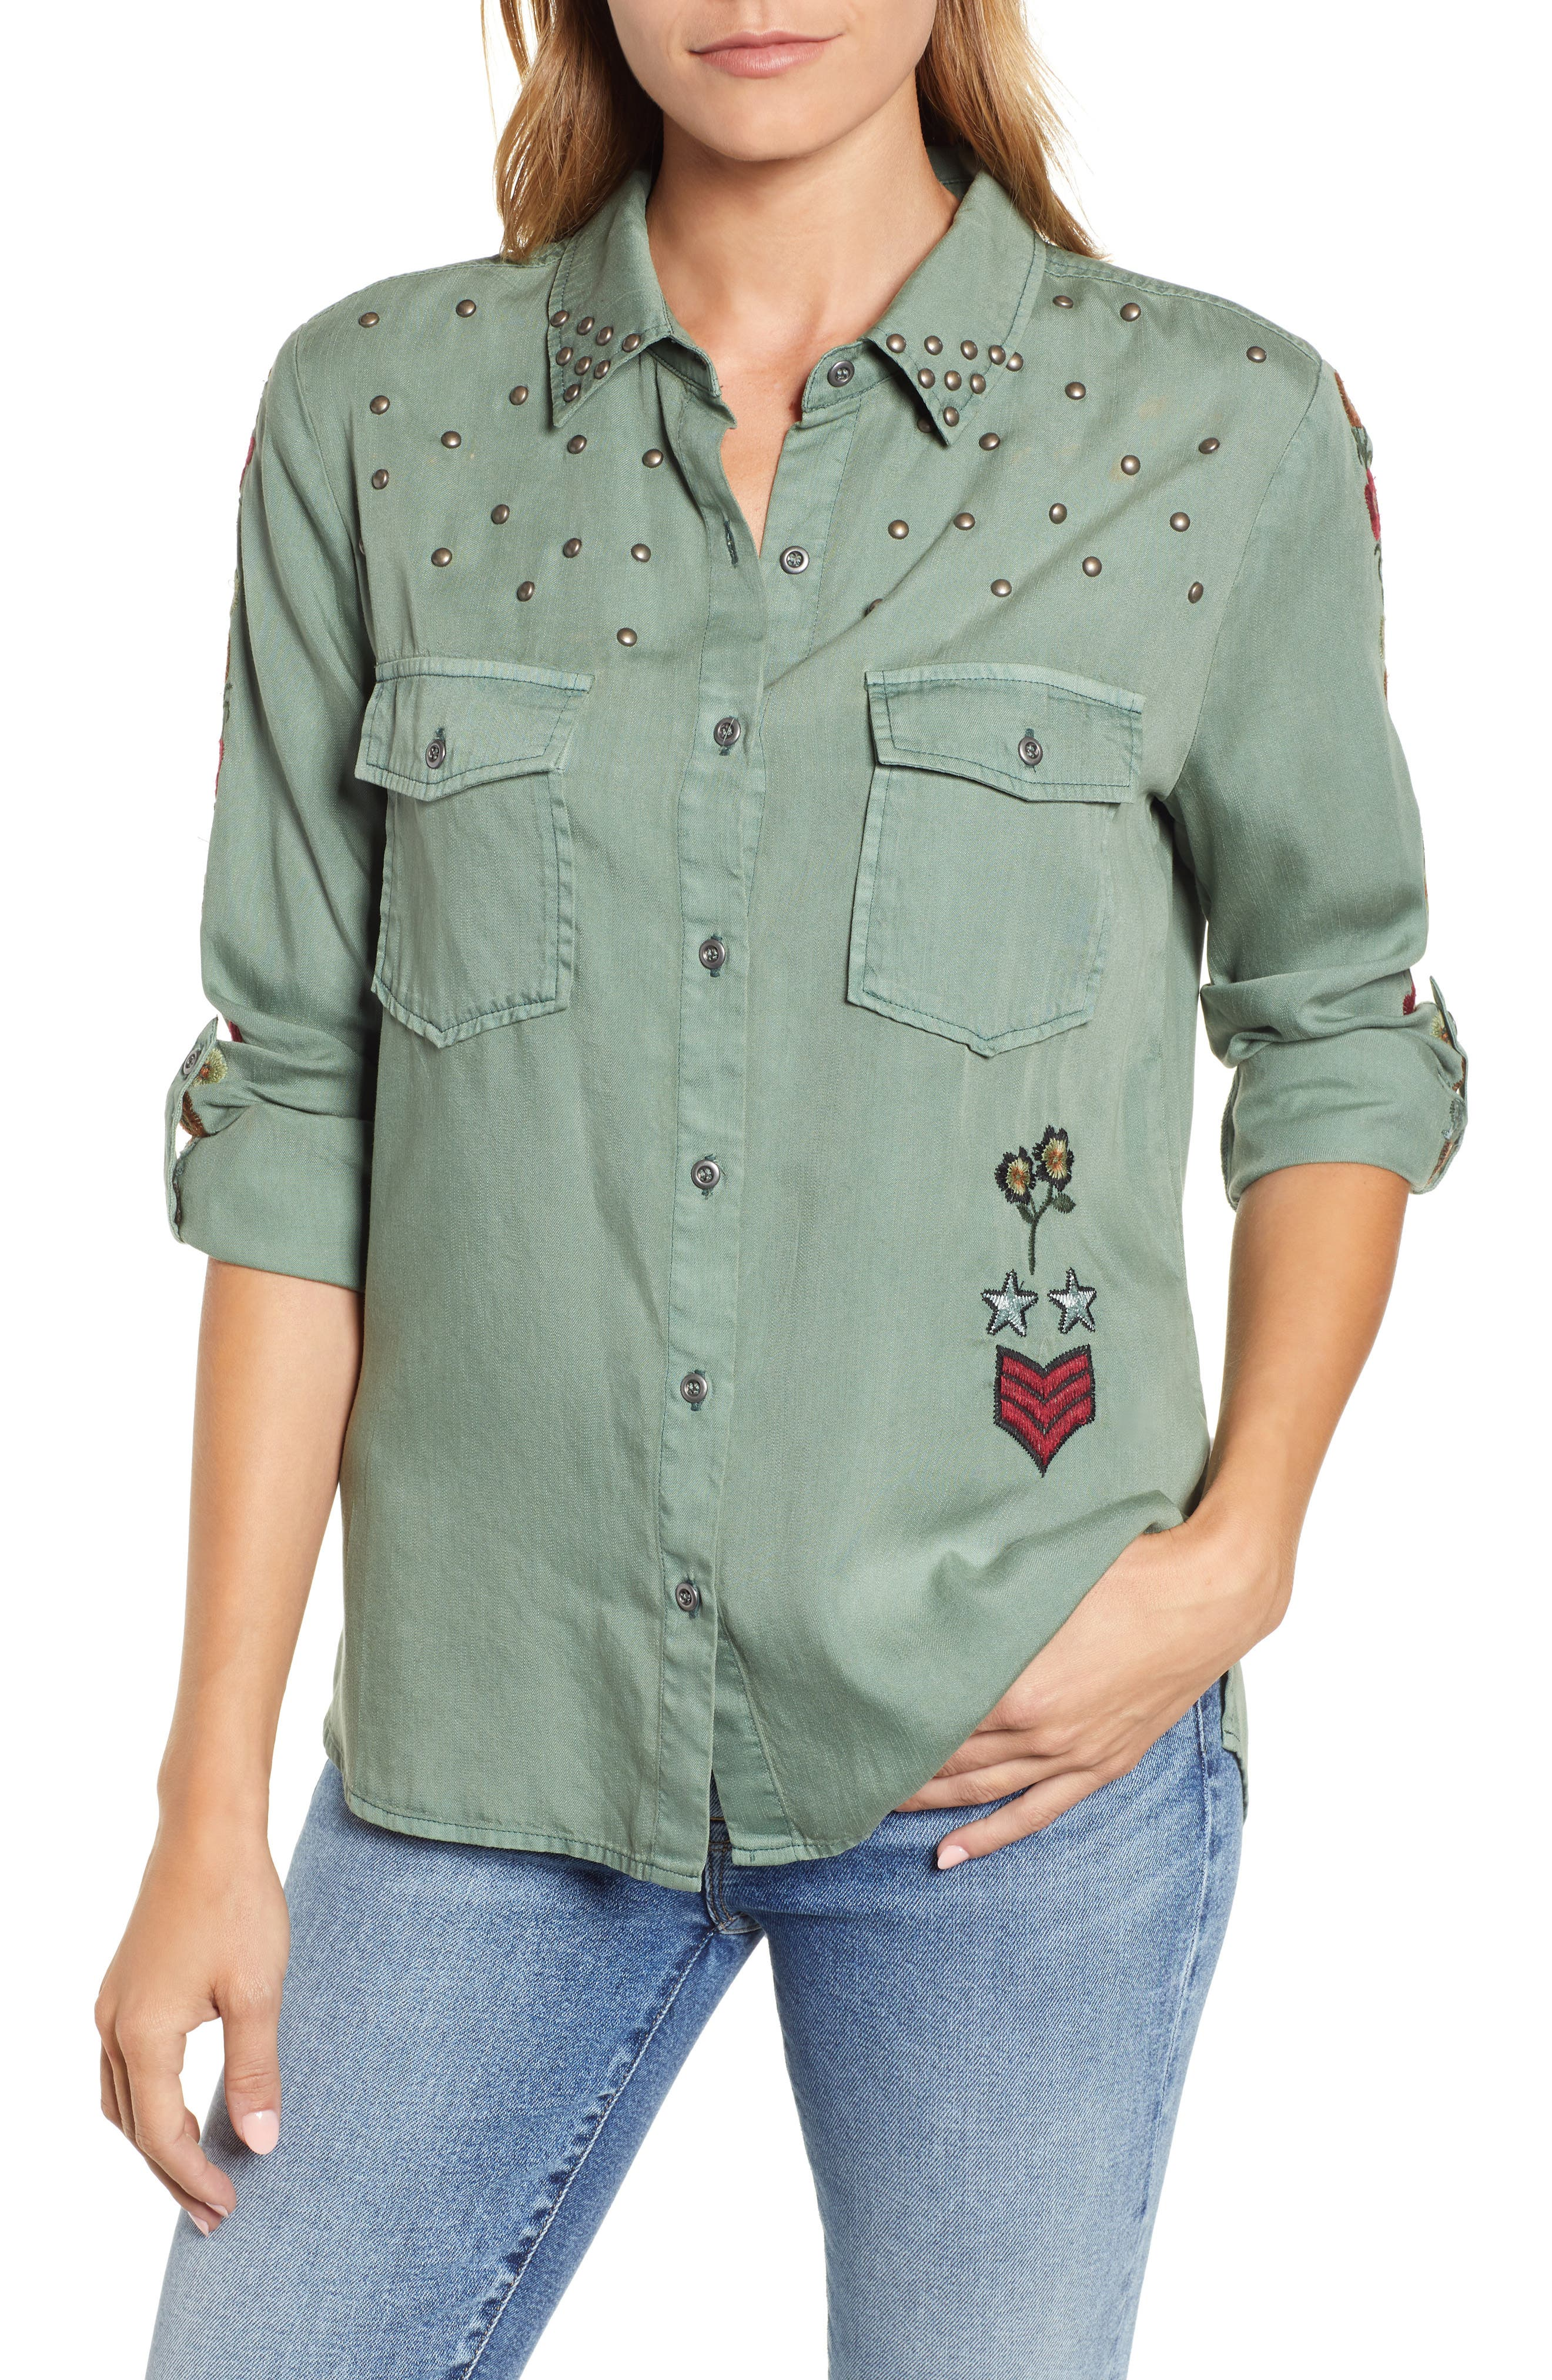 Embroidered & Studded Military Shirt in Forest W/ Embroidery